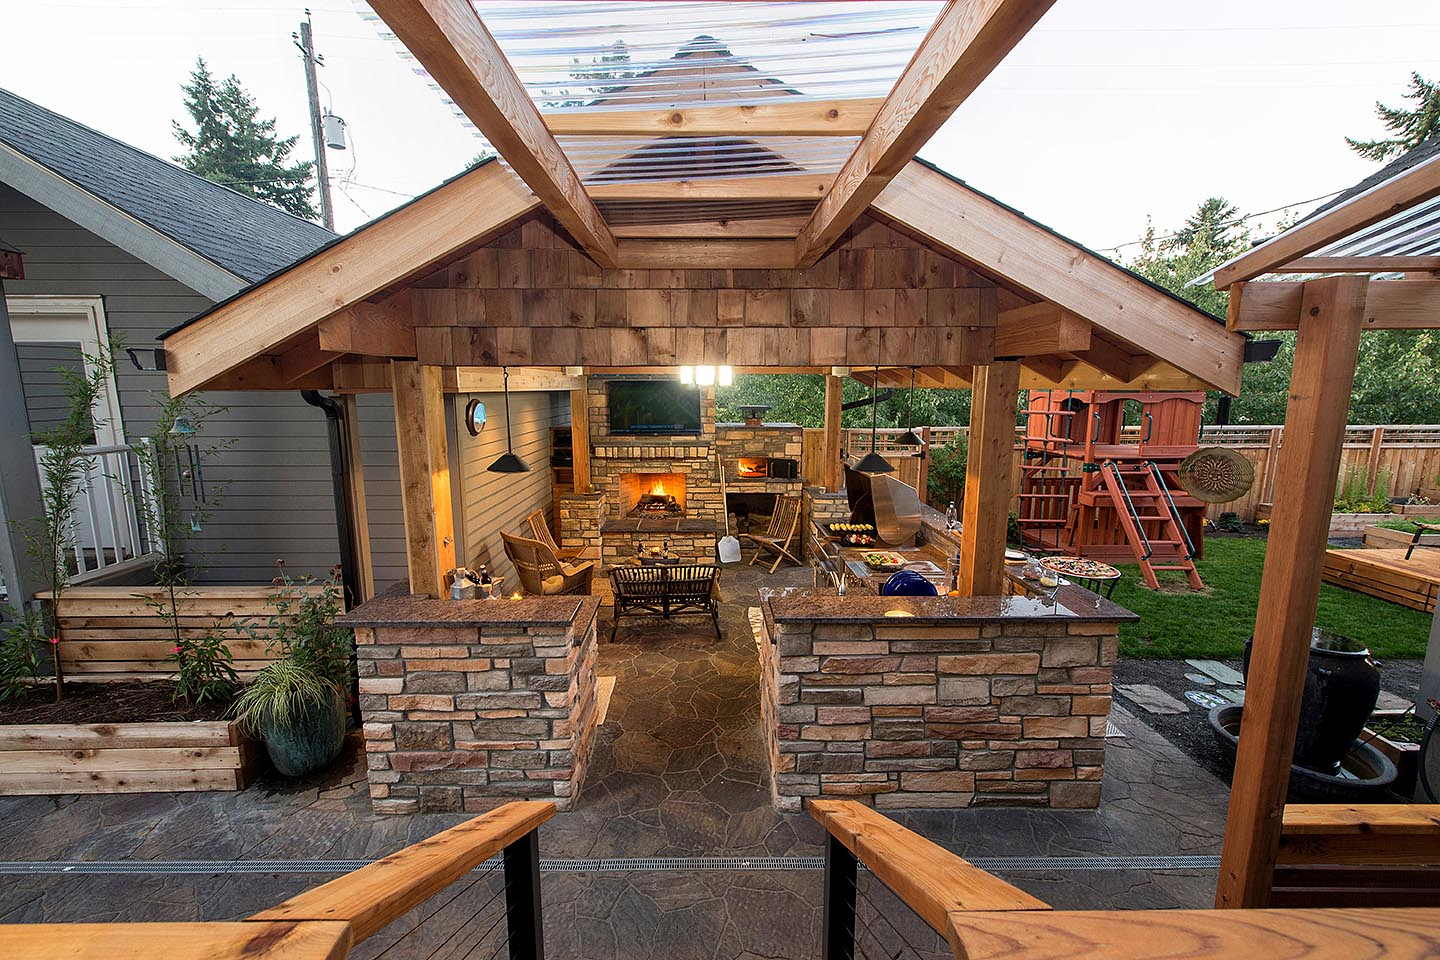 Dog Friendly Backyard Design